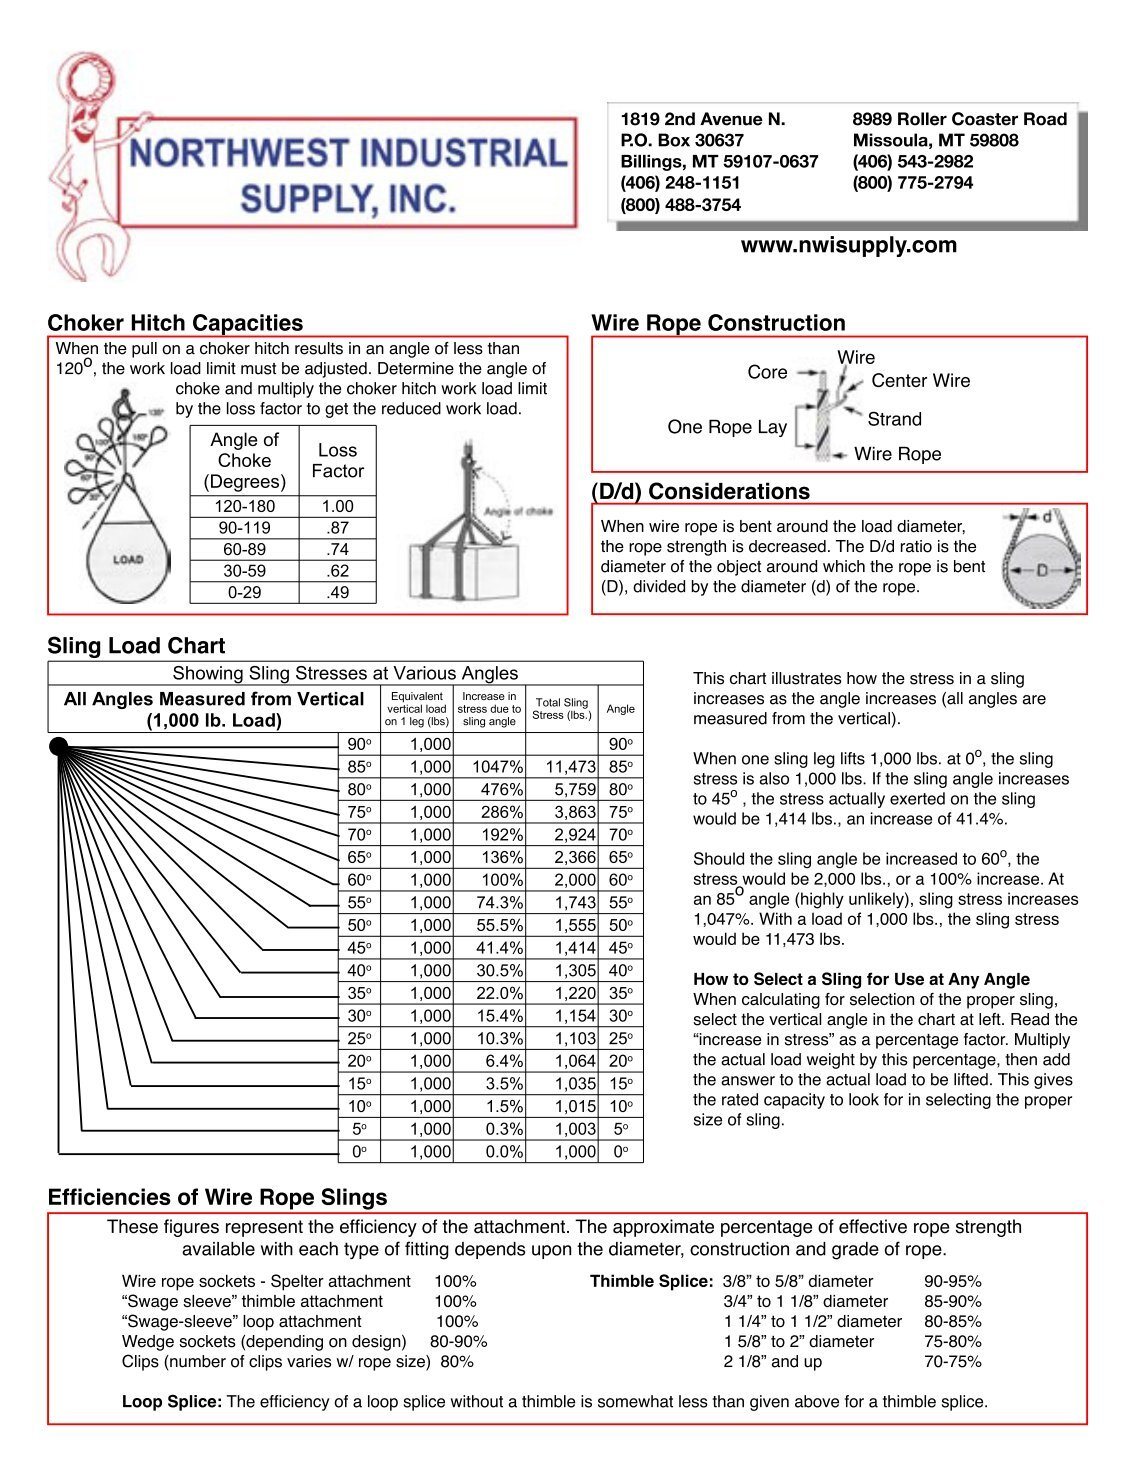 Contemporary Crosby Wire Rope Capacity Charts Inspiration - Simple ...